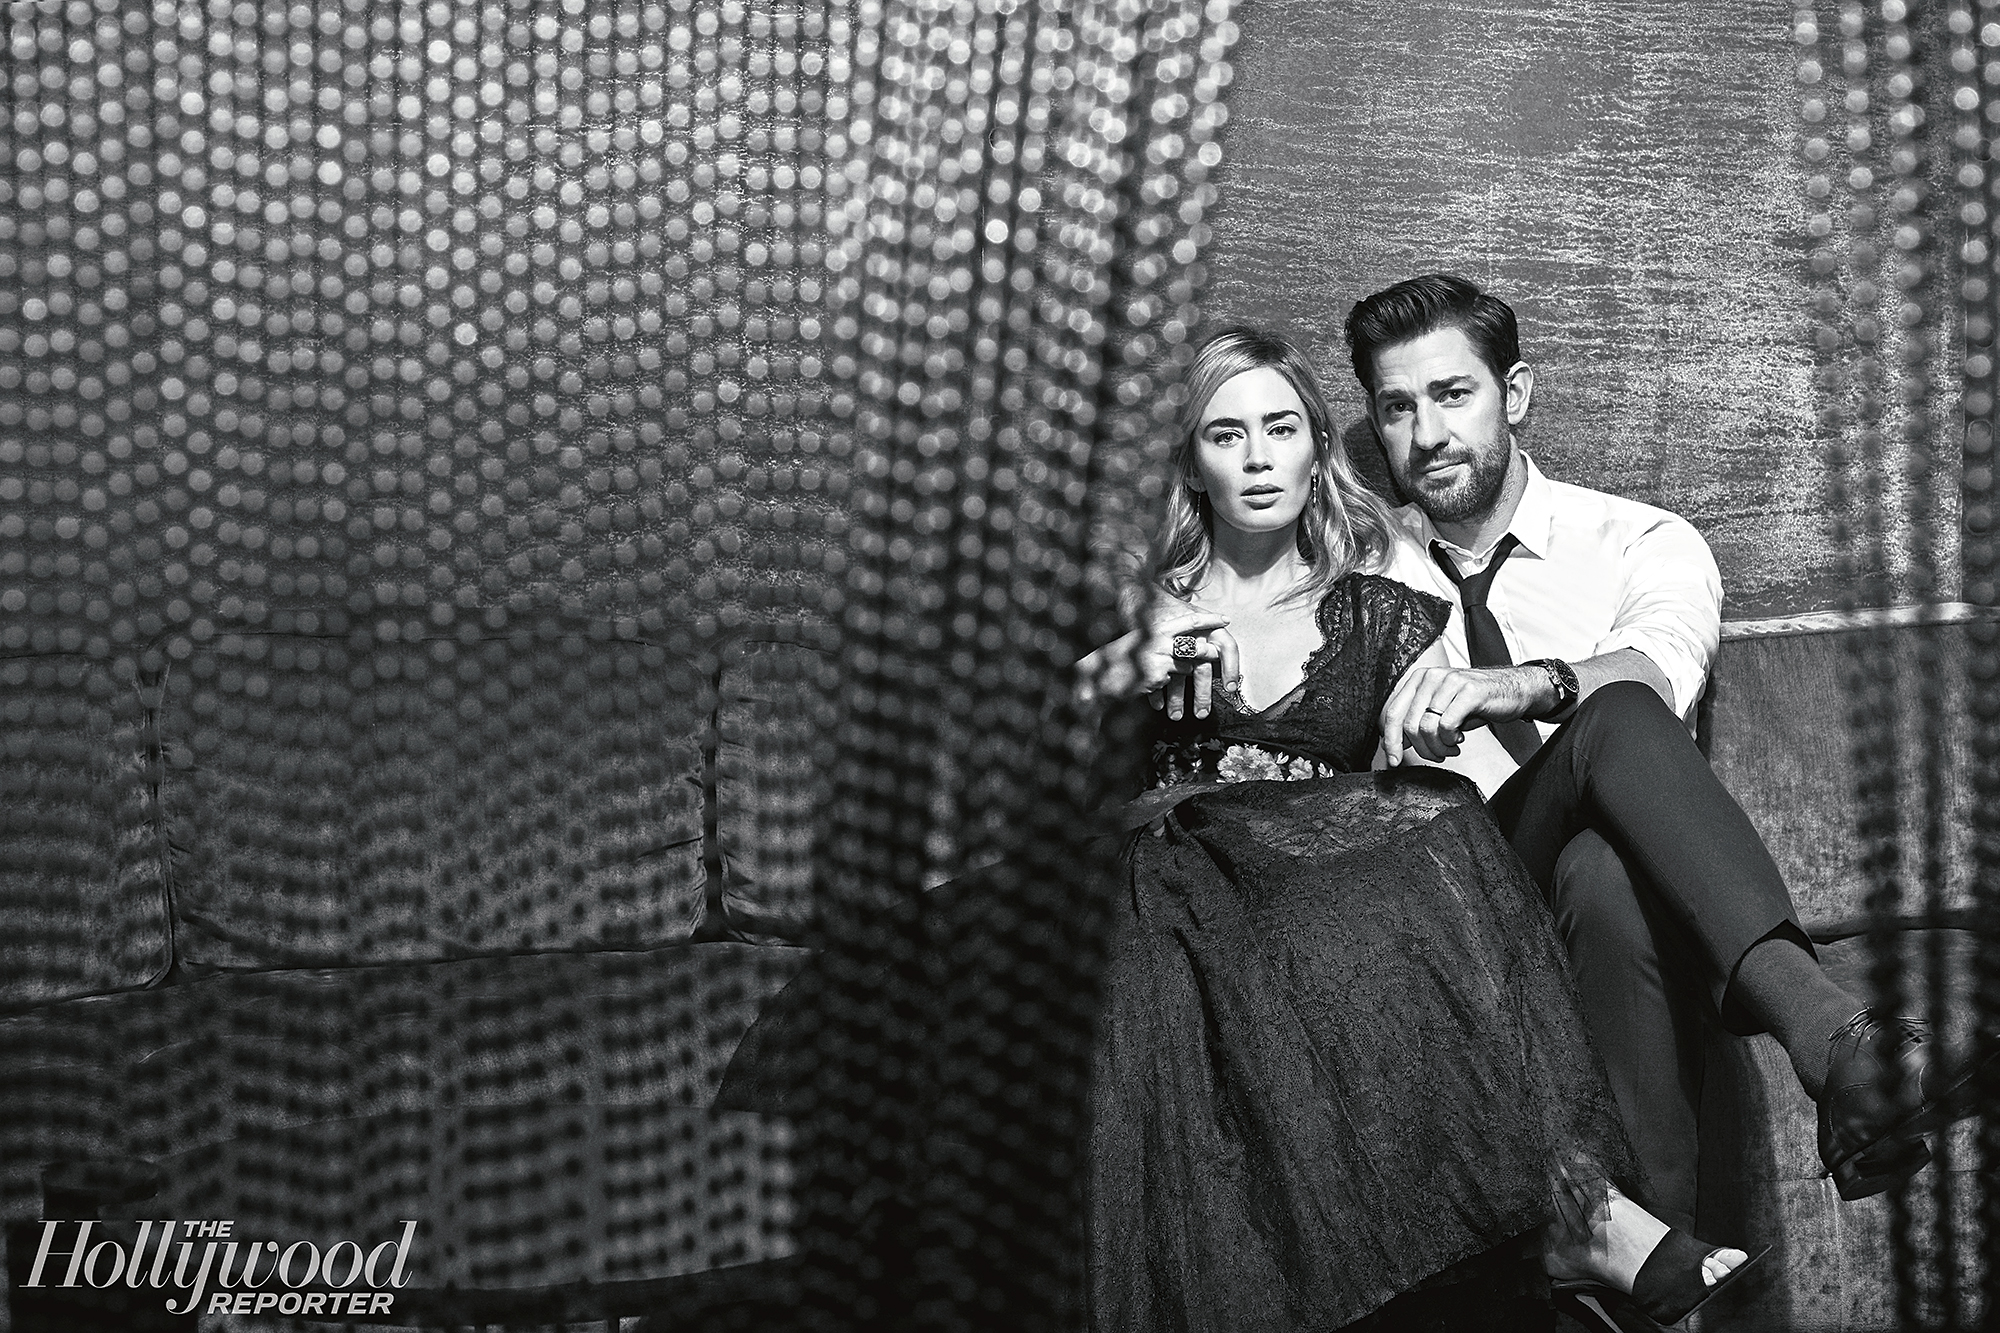 """John Krasinski Emily Blunt First Date Hollywood Reporter Rulebreakers - """"When I got there, I was so destroyed from time zones and not sleeping and all that and was so excited to see my kids, it didn't matter I had no sleep,"""" Krasinski said of traveling from Montreal where he was filming Jack Ryan to London where Blunt was staying with their children while filming Mary Poppins. """"On top of it, there was nothing from Emily but love and support."""""""